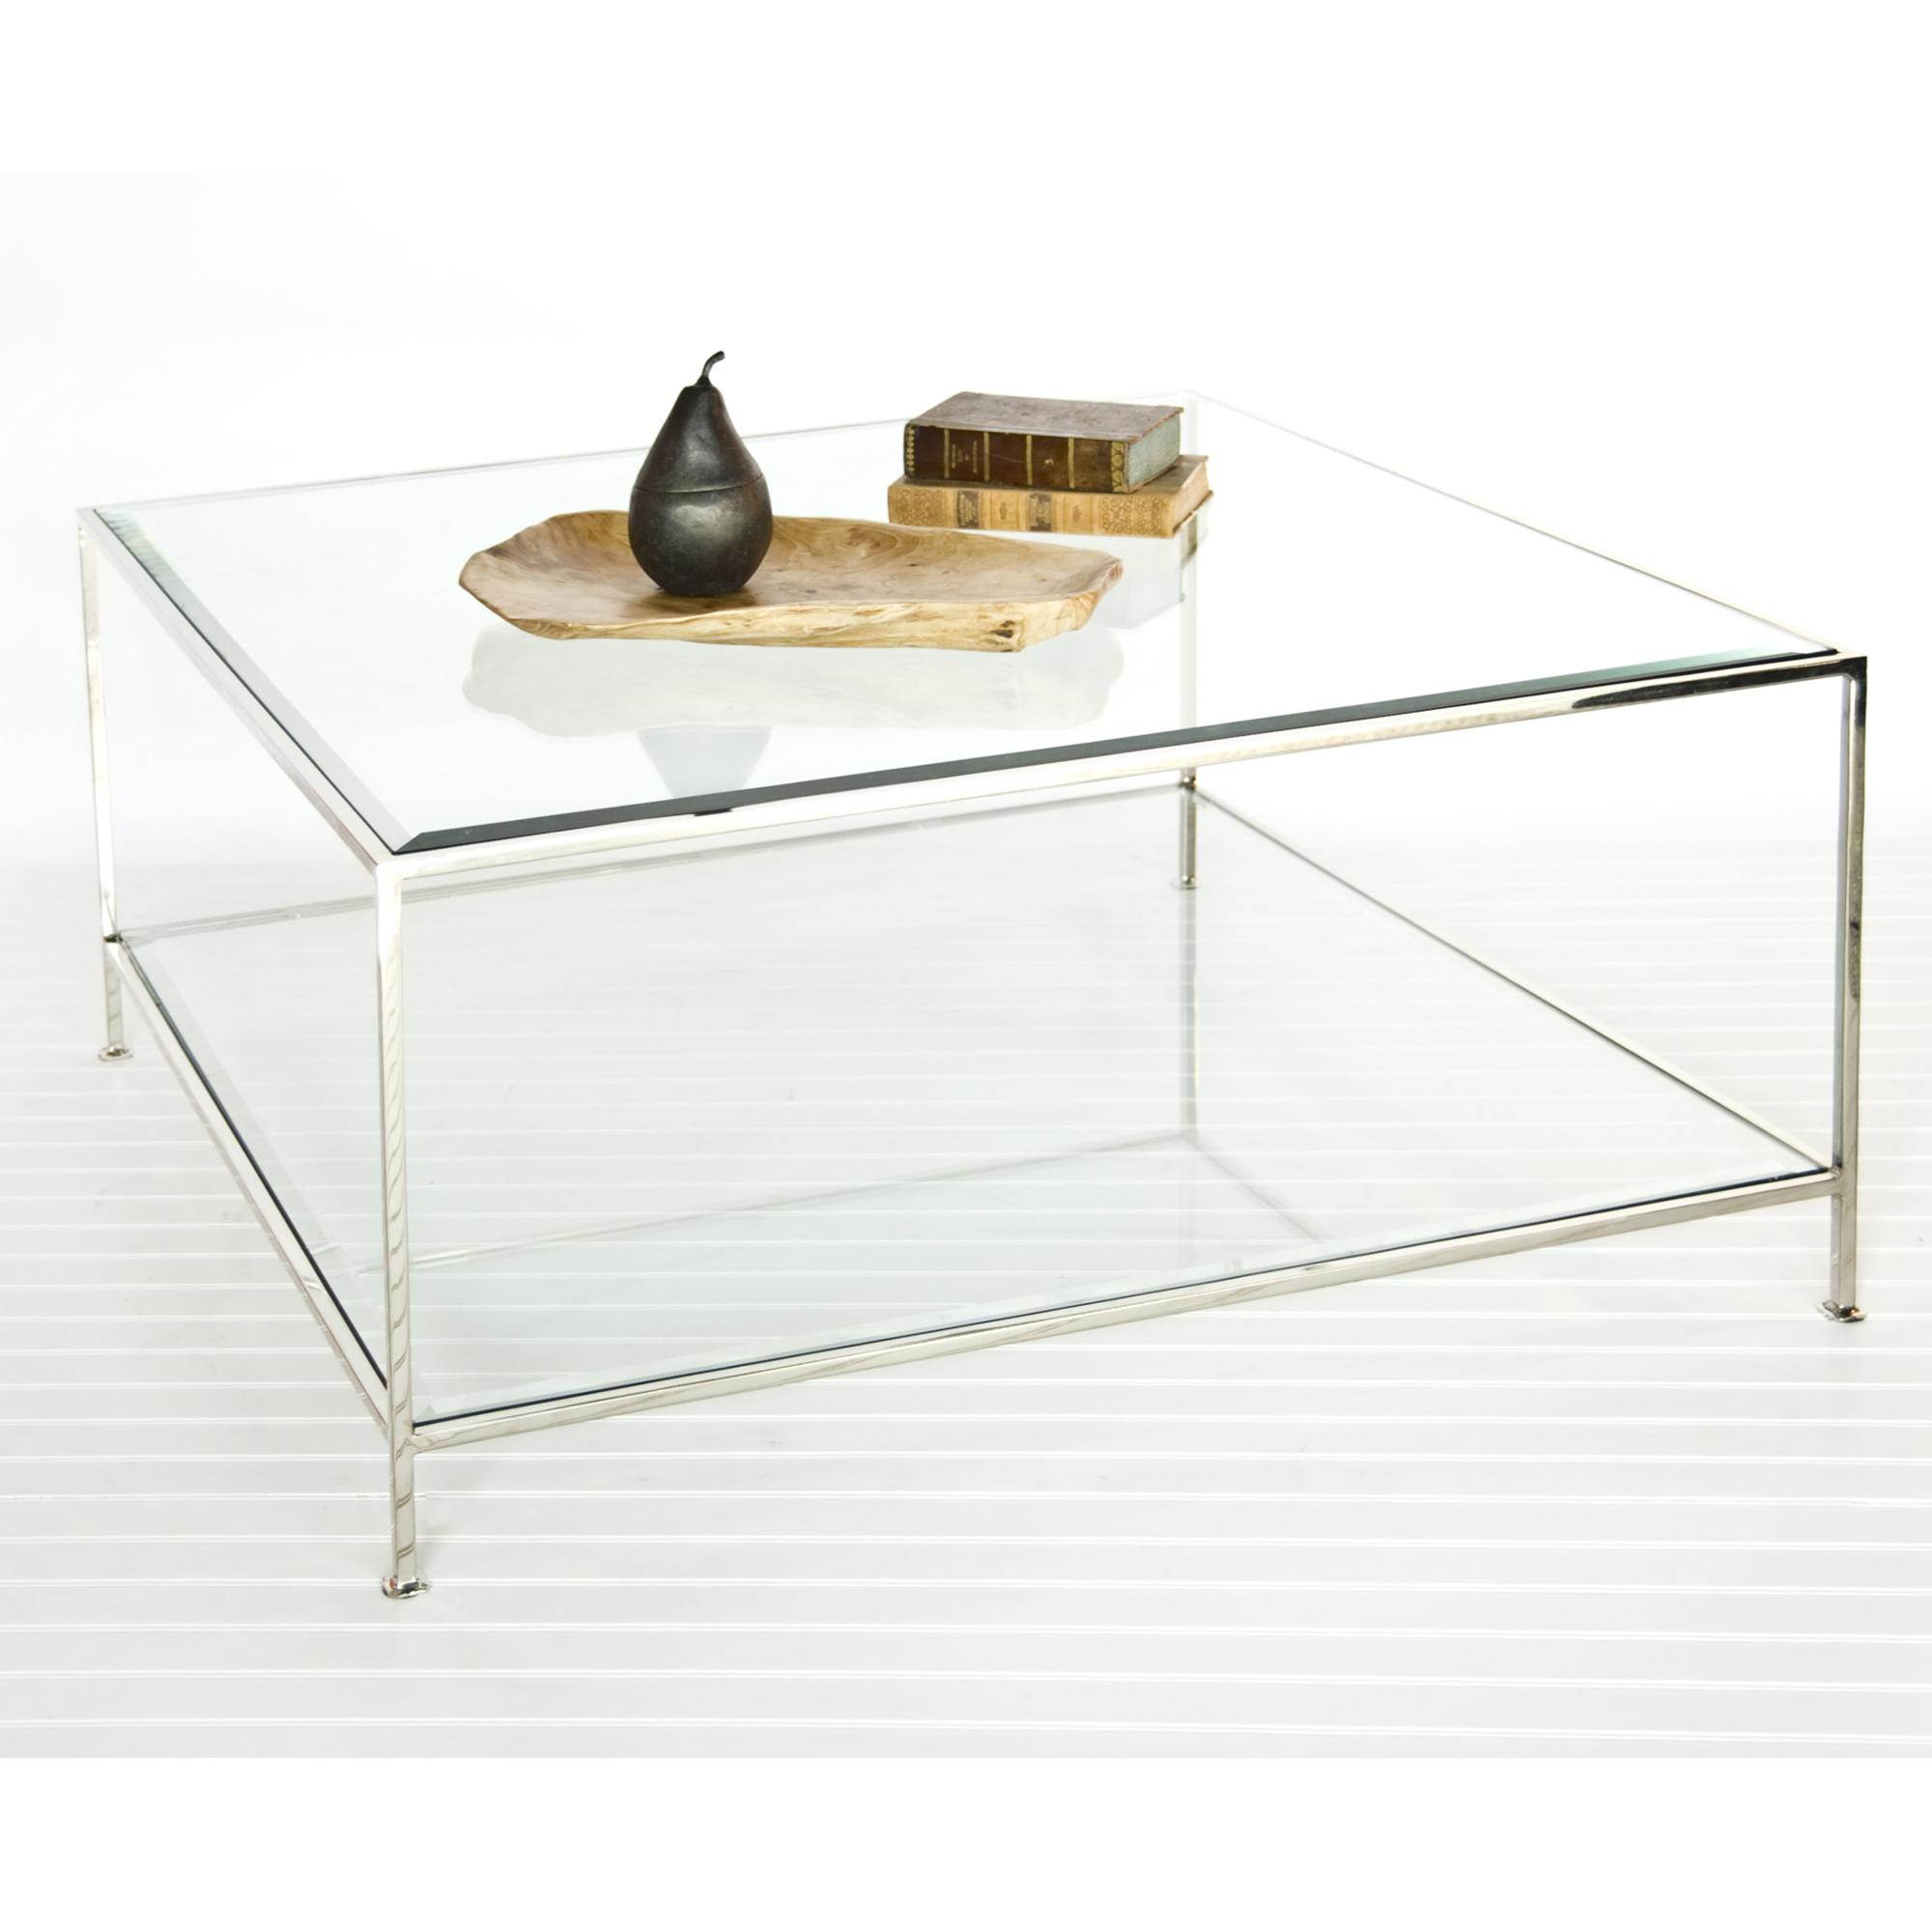 Glass Square Coffee Table Is This Lovely Recycled Wood Iron And Pine Shape Ensures That This Piece Will Make A Statement (View 7 of 10)